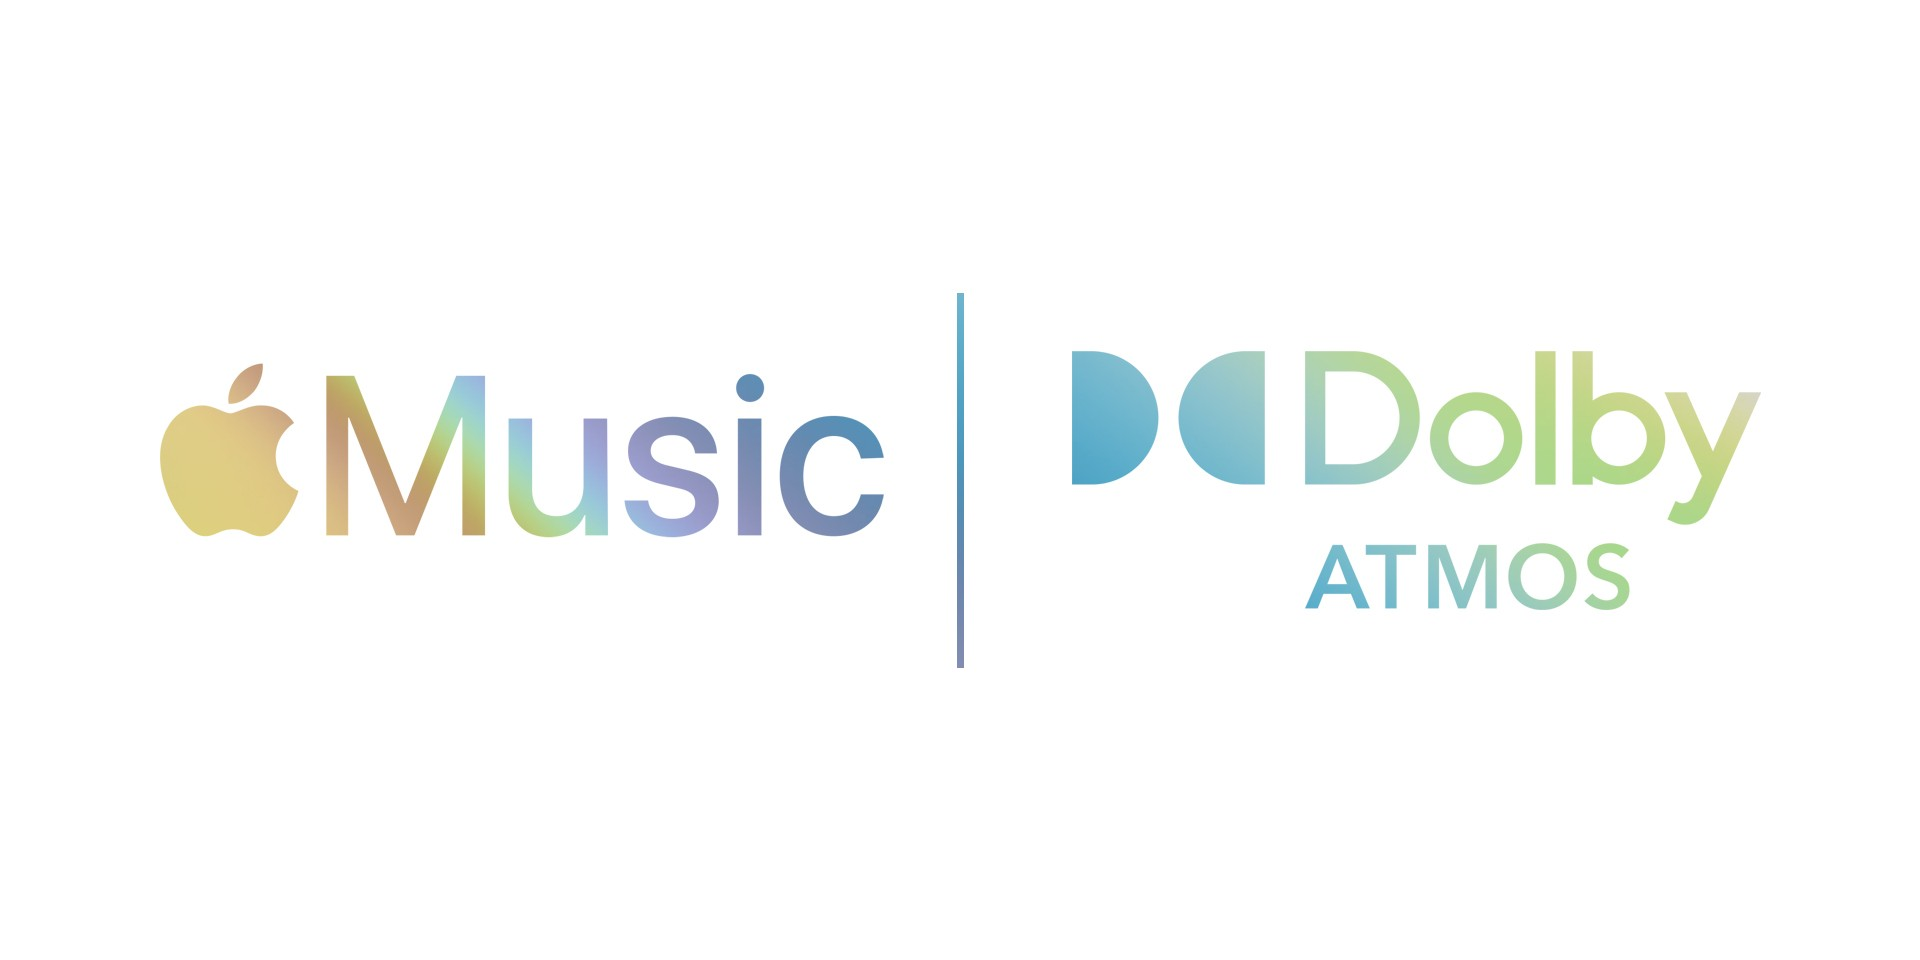 Apple Music is bringing the next generation of sound through Spatial Audio with Dolby Atmos for free